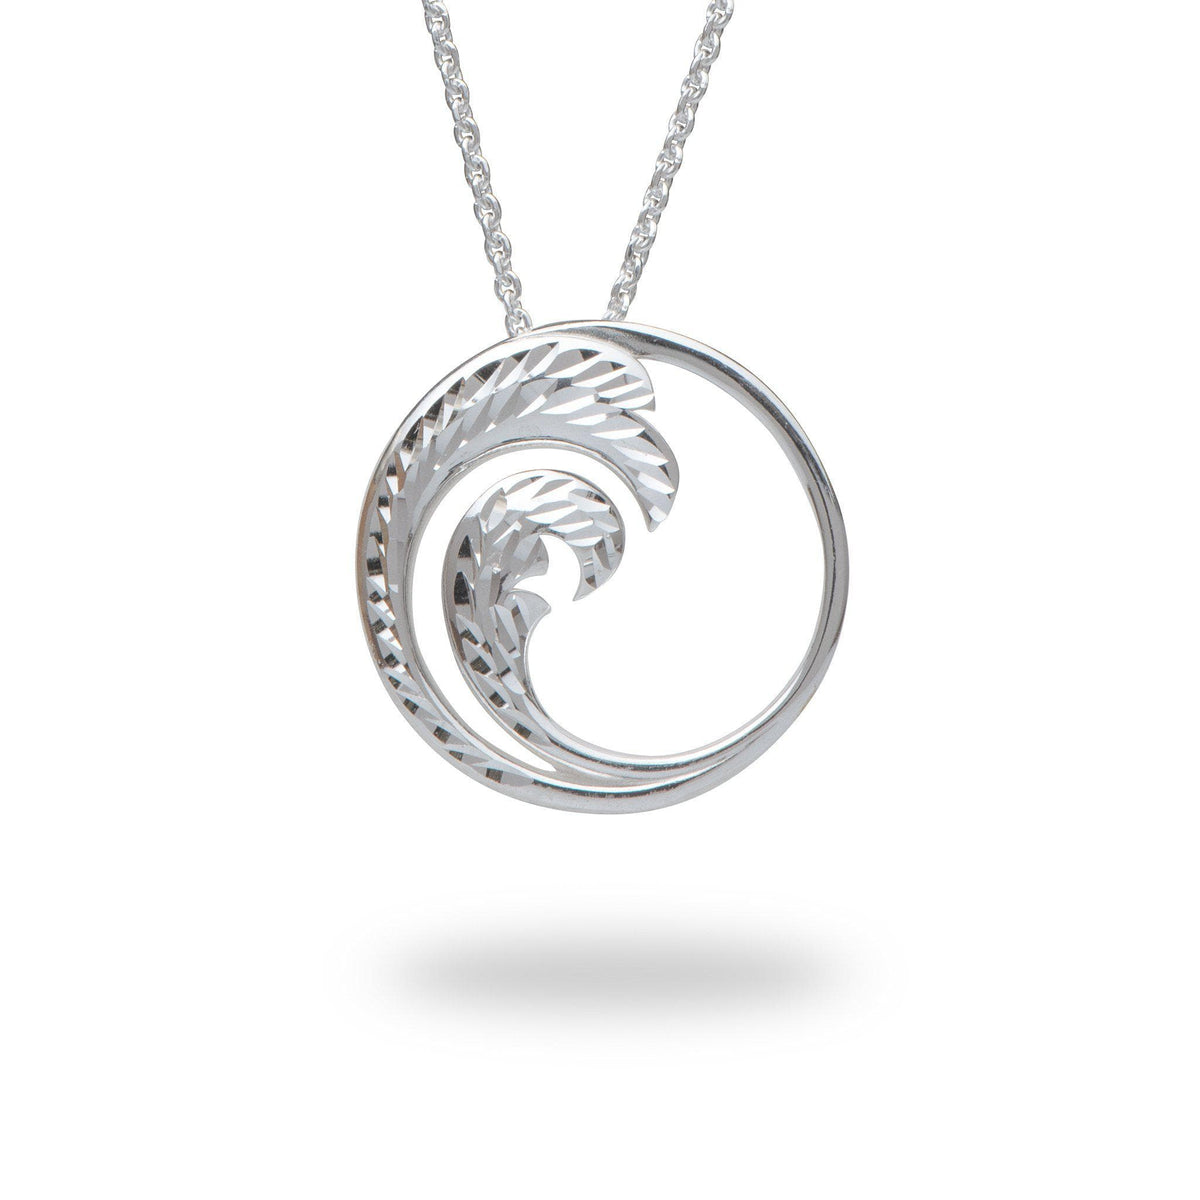 Nalu (Wave) Necklace in Sterling Silver